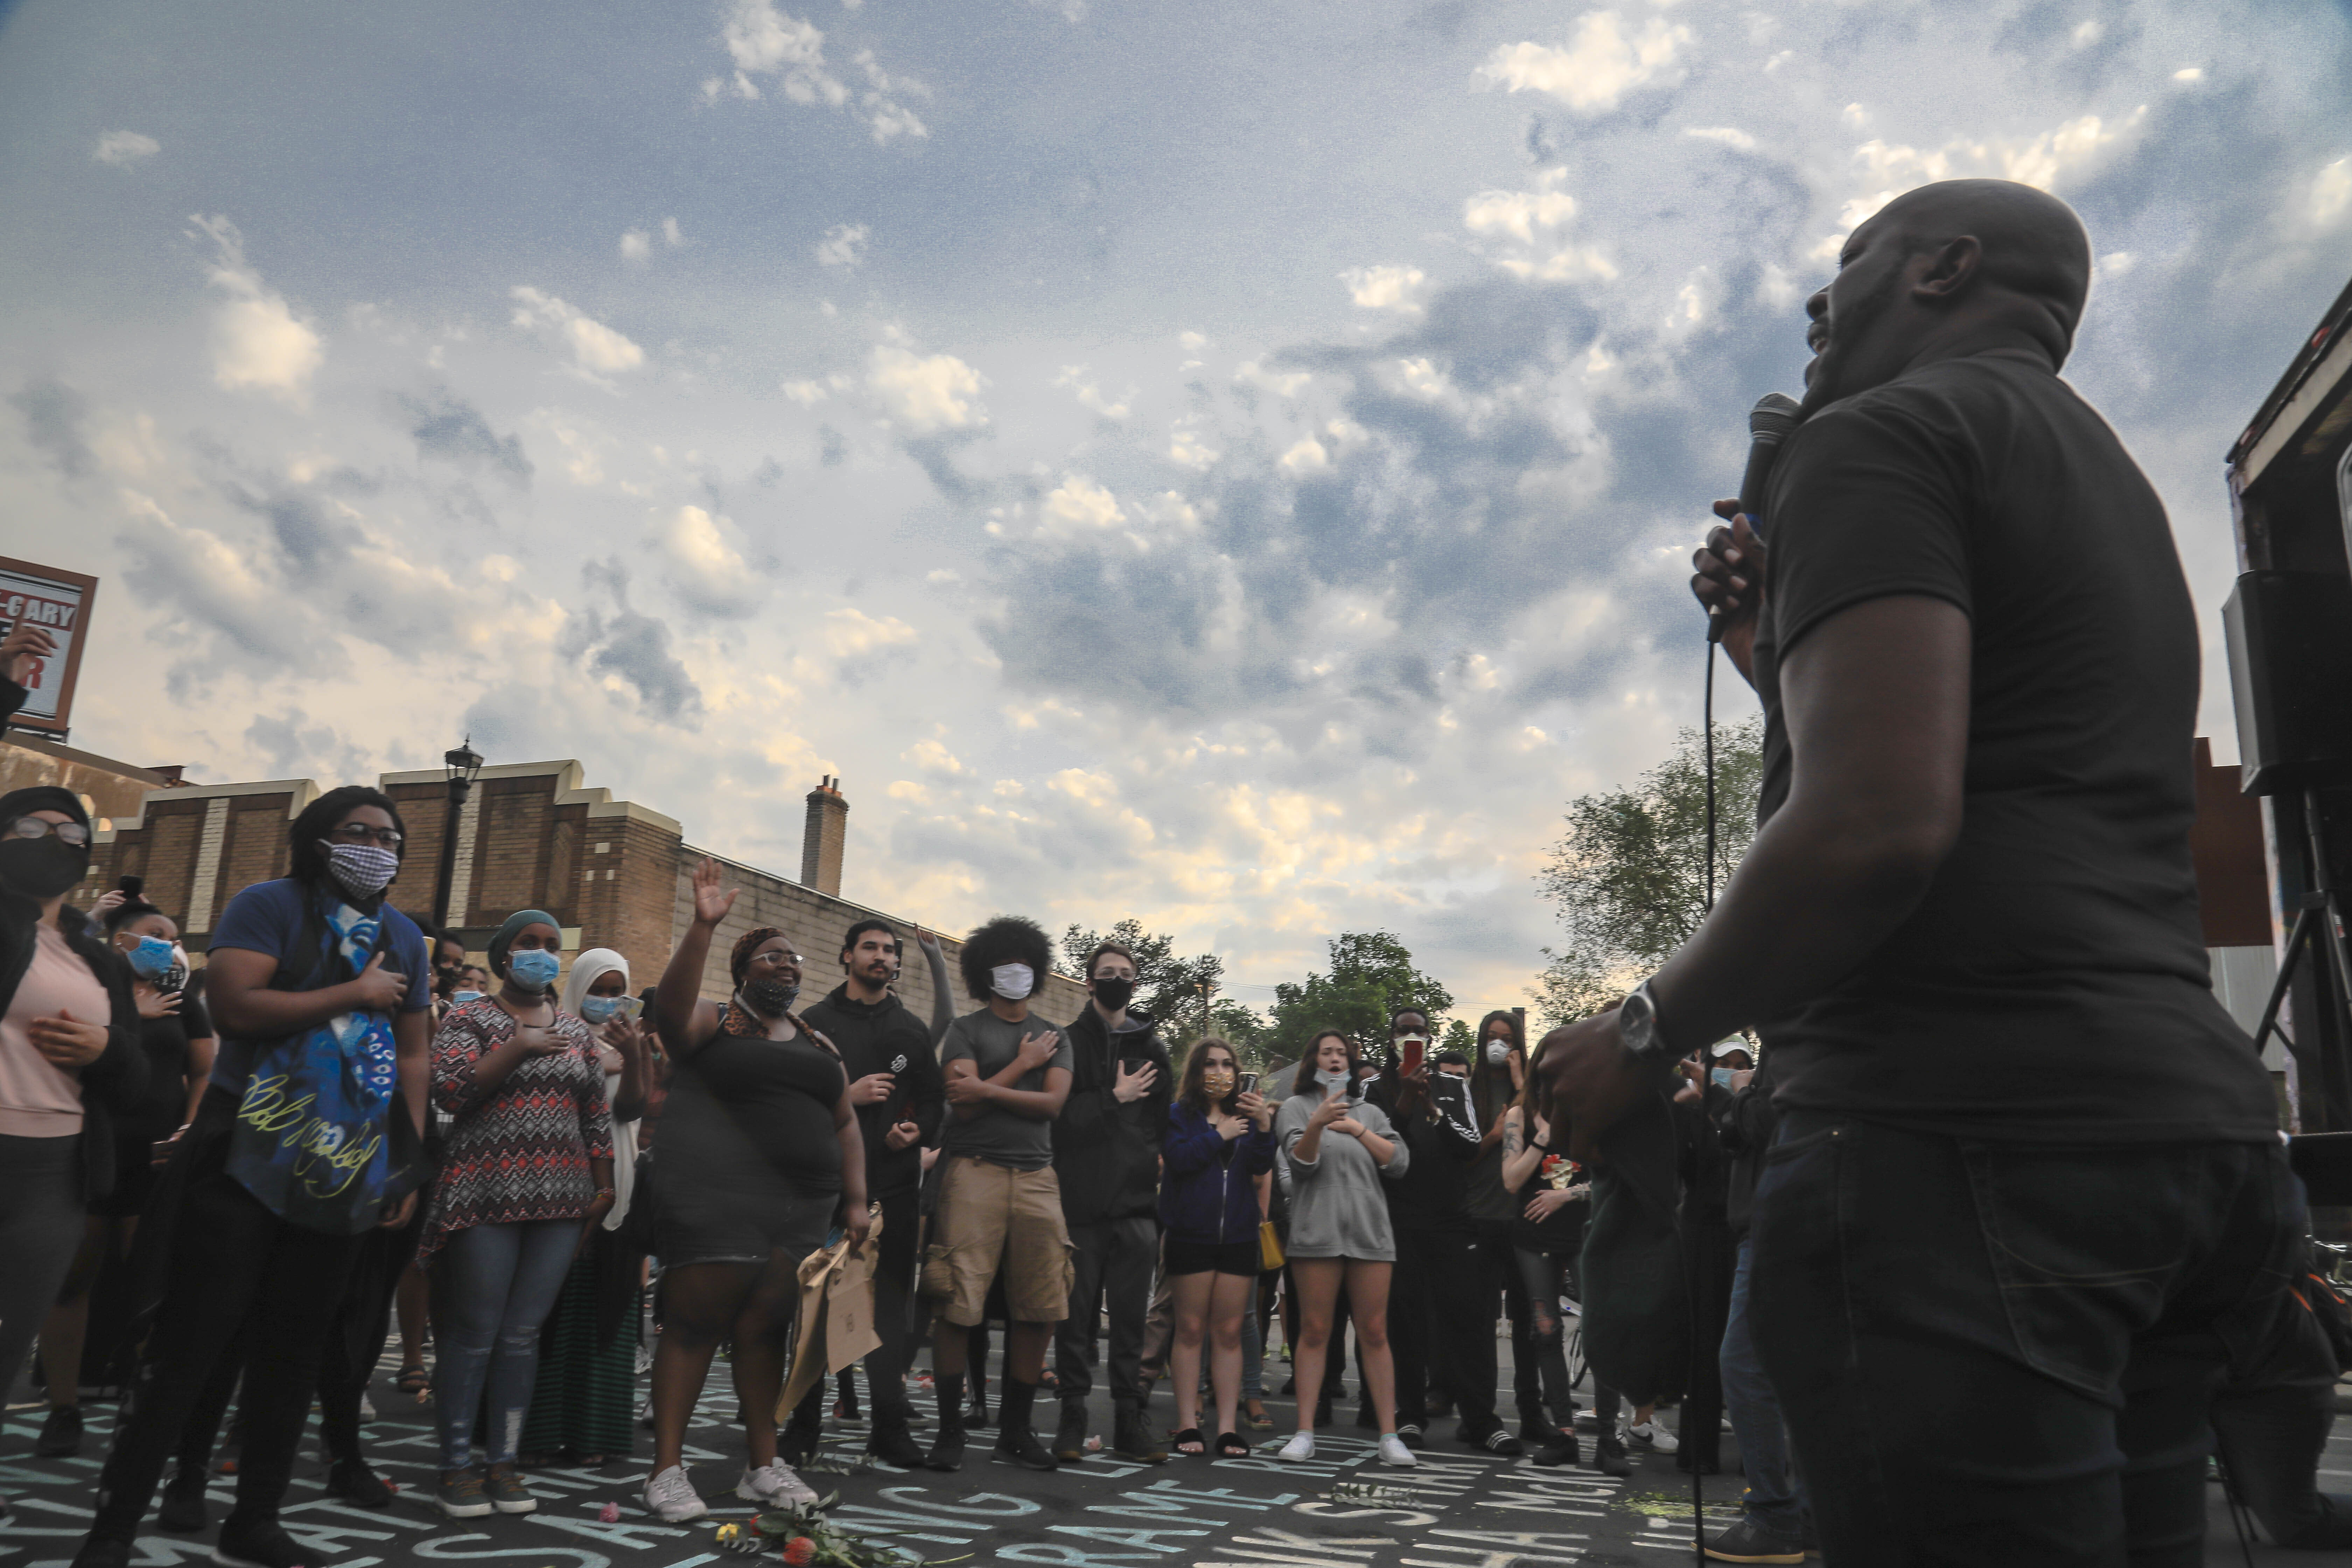 """People visiting the neighborhood where George Floyd was killed during an encounter with police, gather to listen as Rev. Mack Knight, right, sings the Black national anthem """"Lift Every Voice,"""" Tuesday, June 2, 2020, in Minneapolis."""